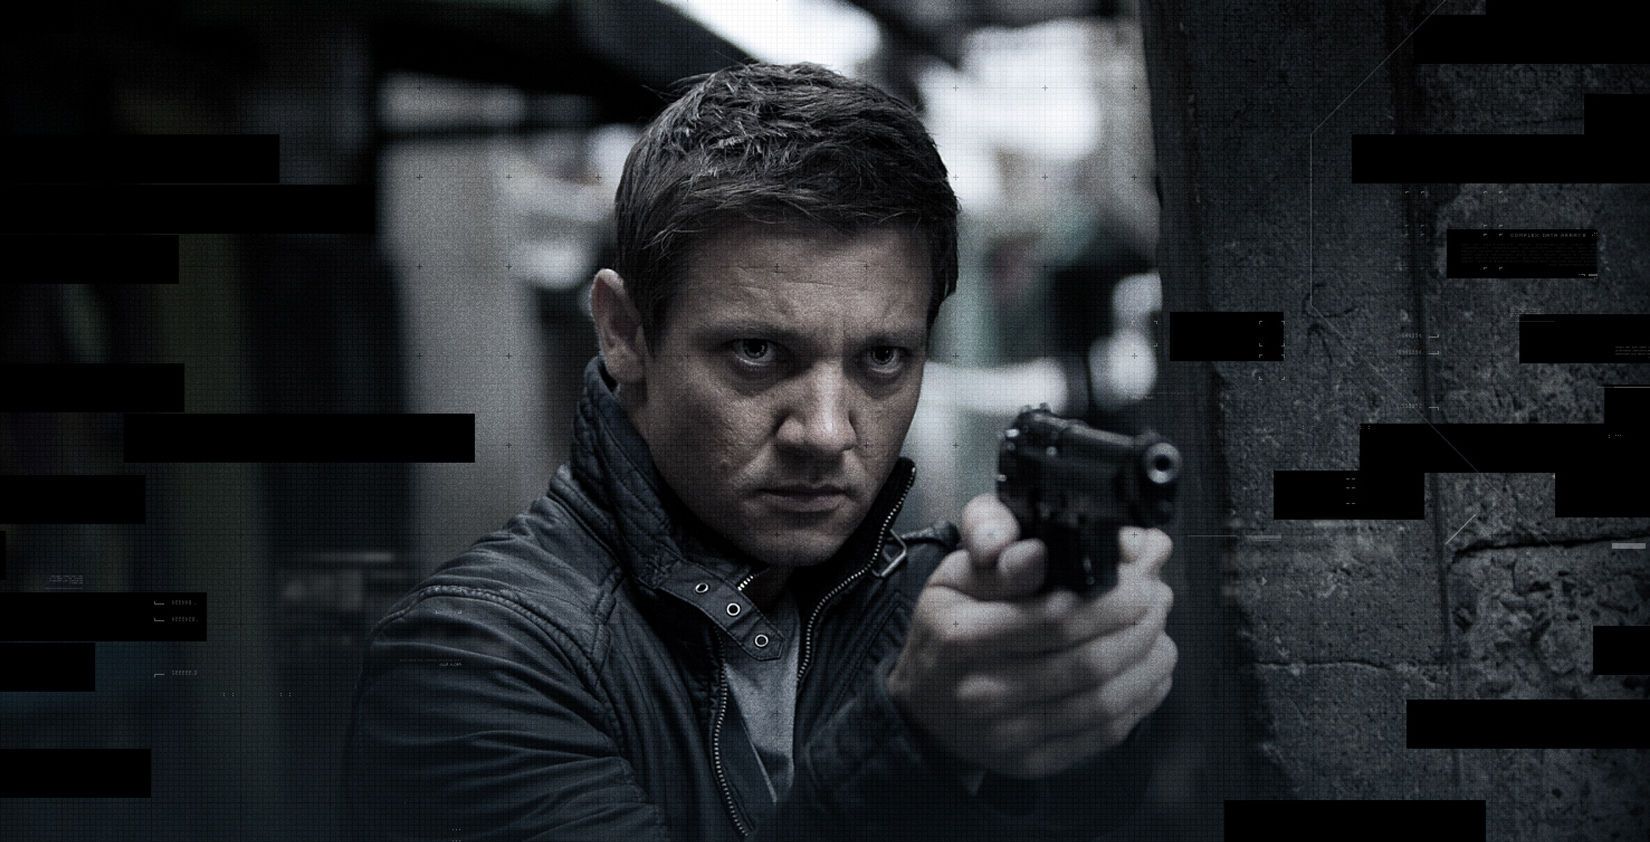 Untitled Jeremy Renner/Bourne Sequel Wallpapers